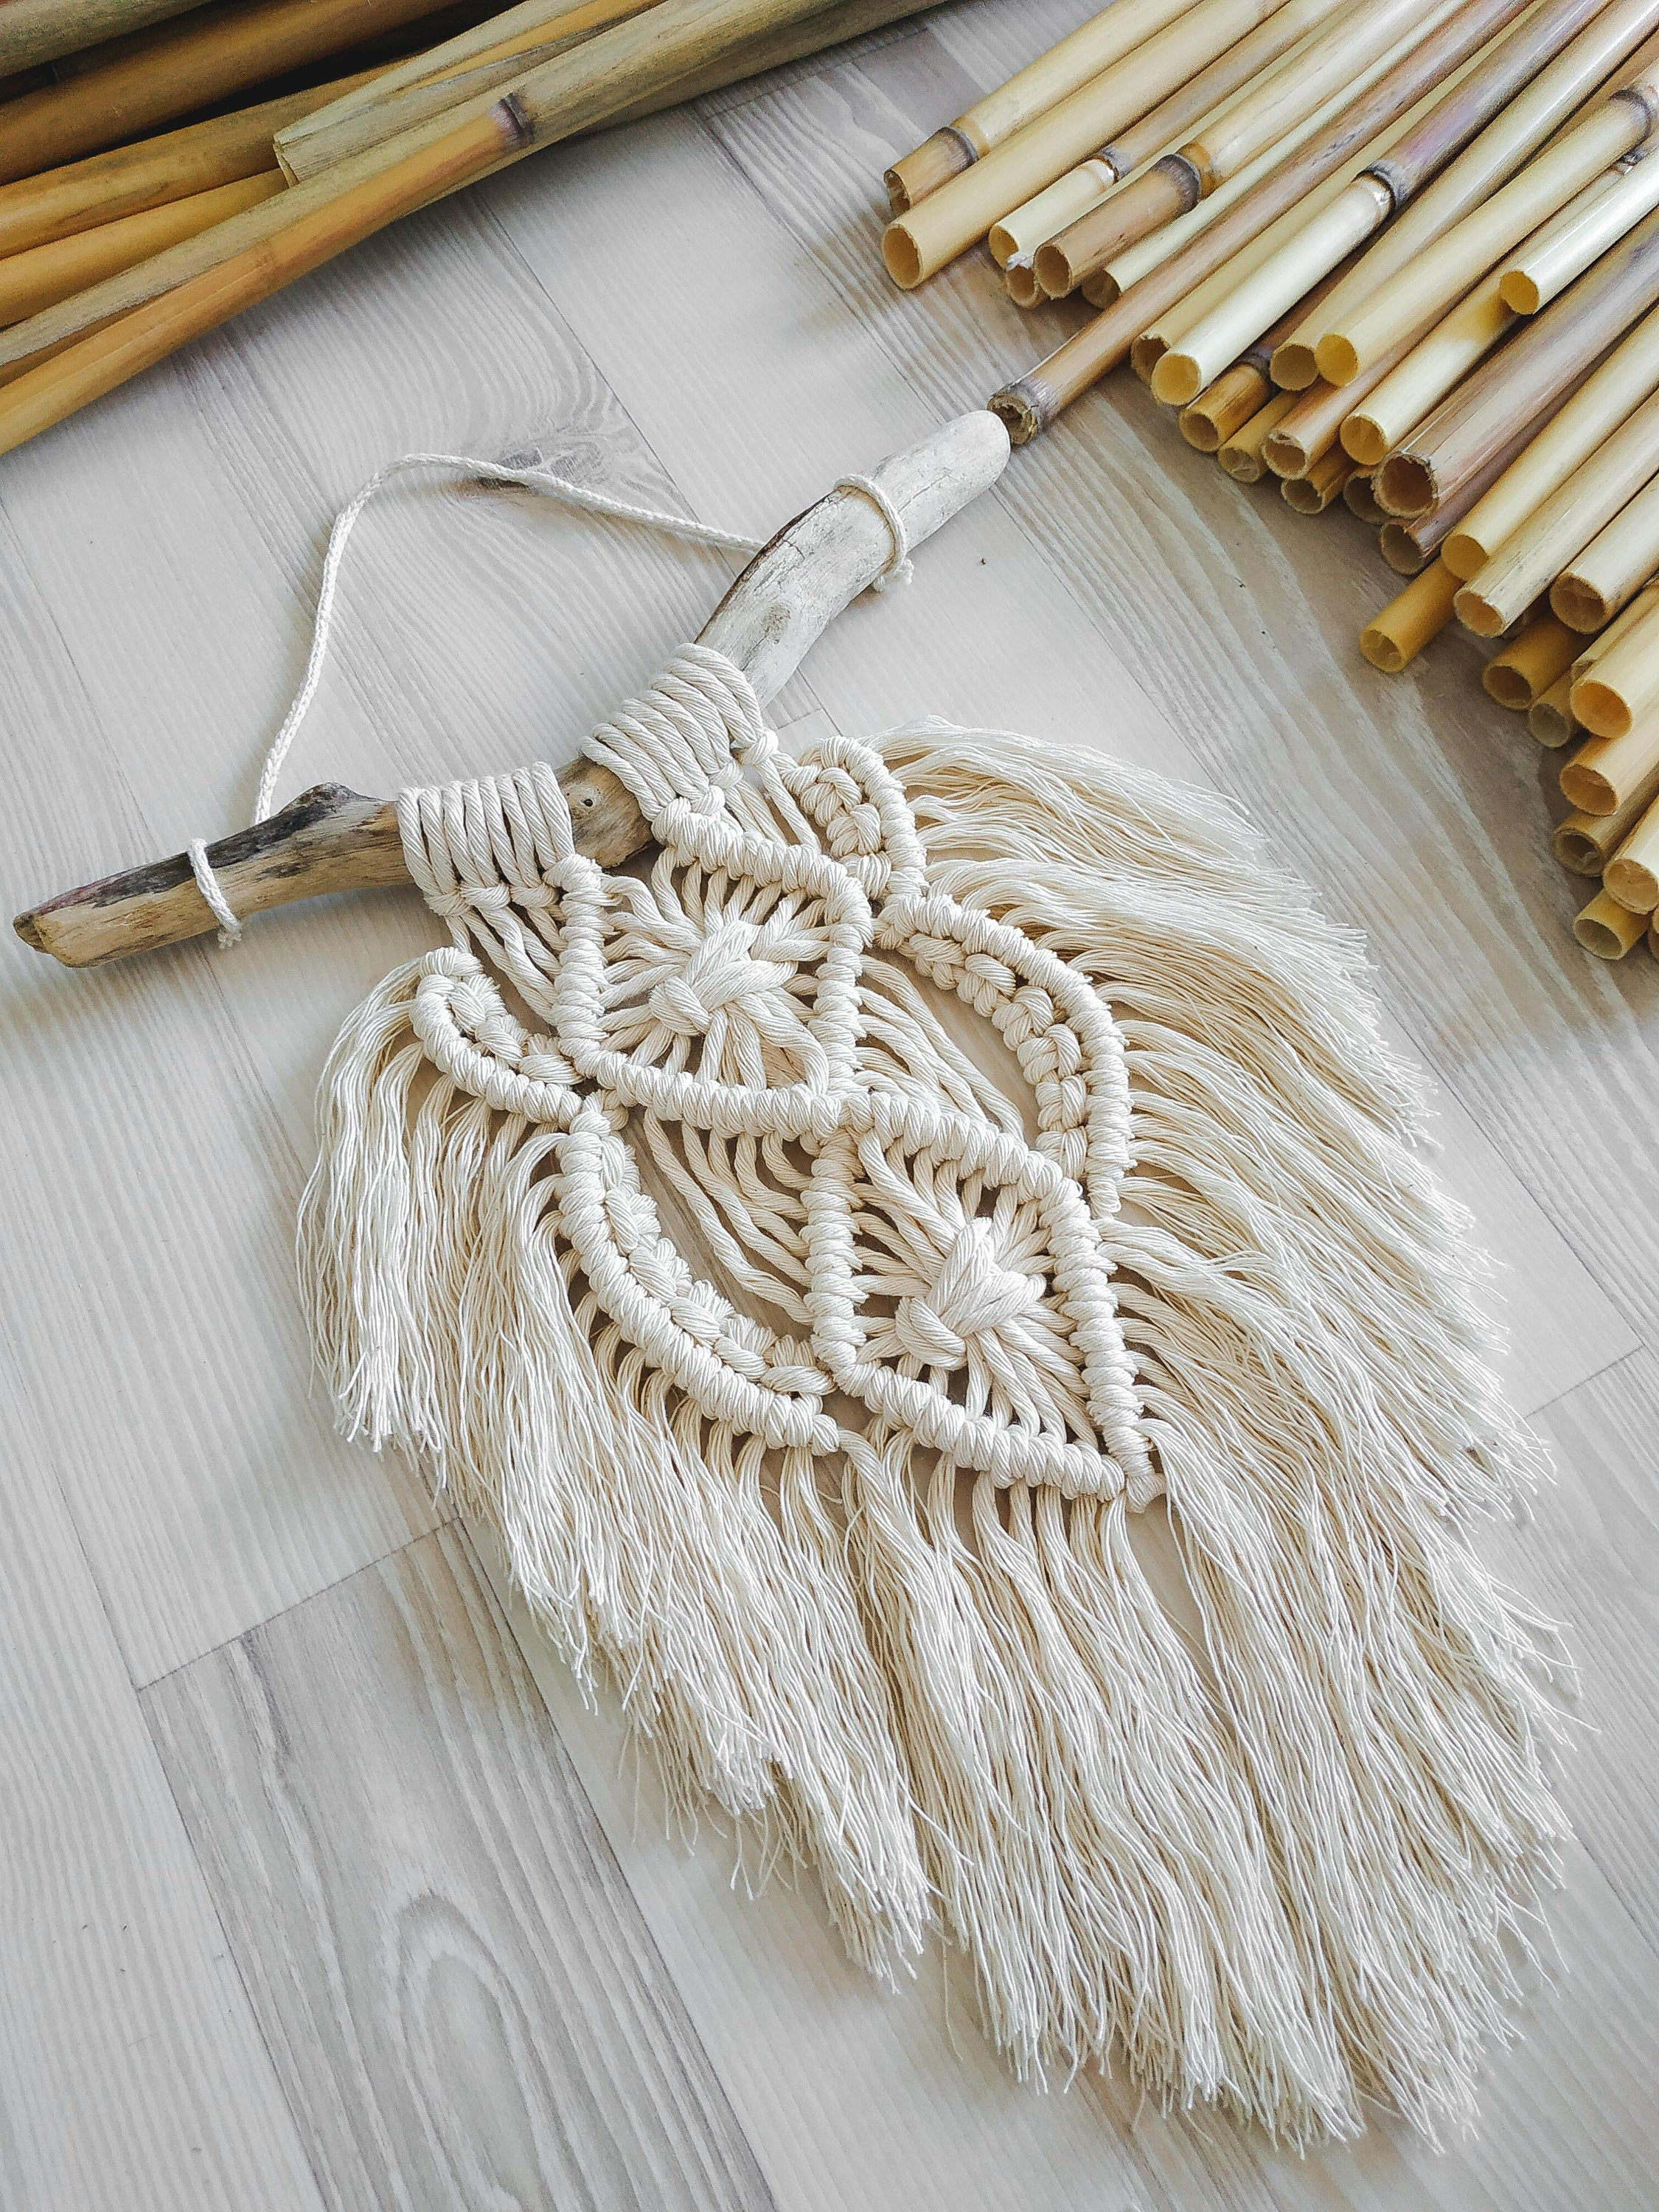 Items similar to Small macrame wall tapestry on a hanger caught drifting from the sea on Etsy